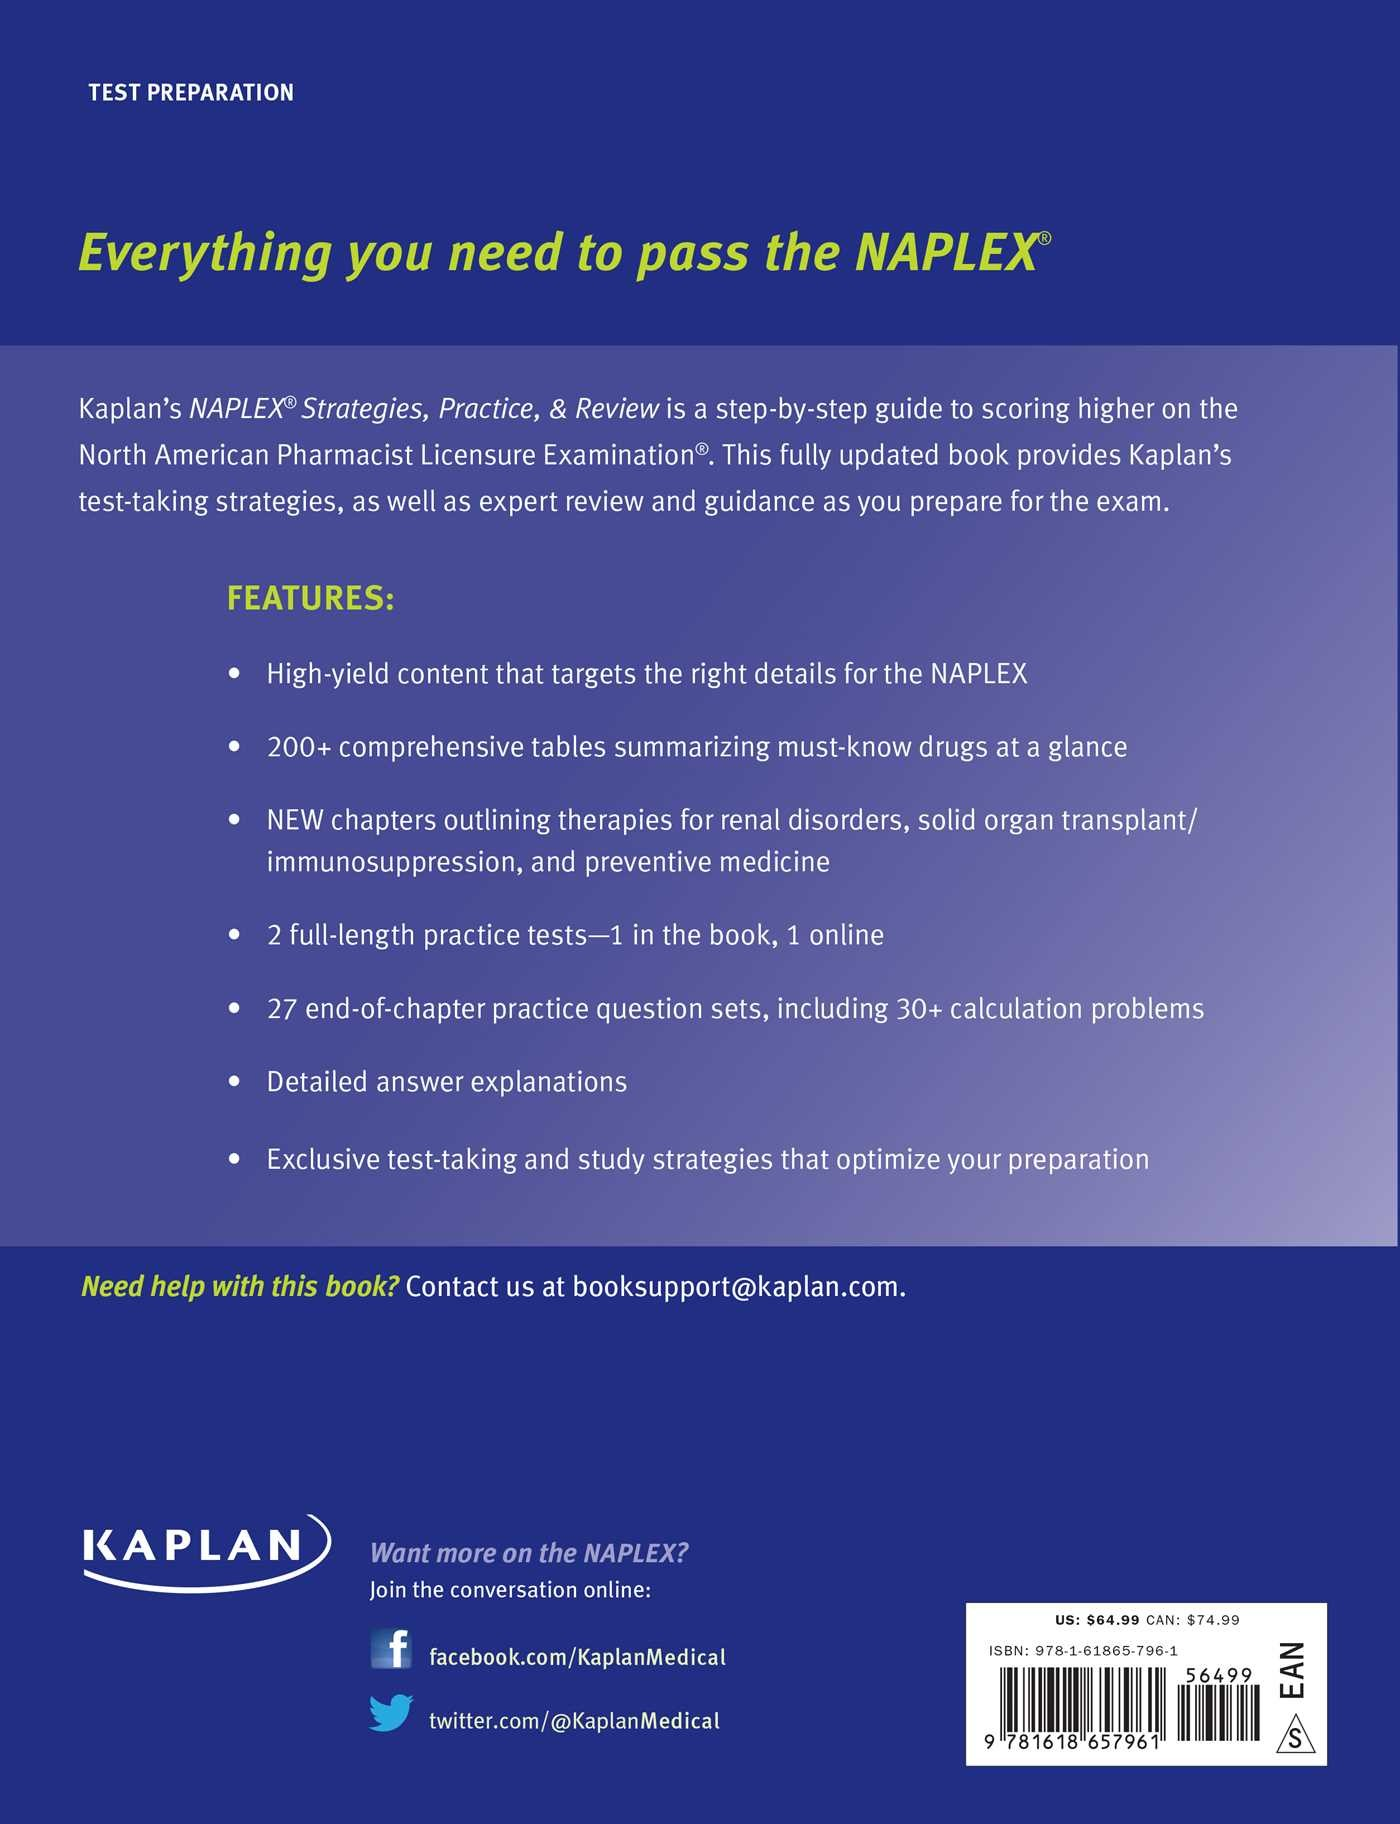 Naplex-2015-strategies-practice-and-review-with-9781618657961.in01